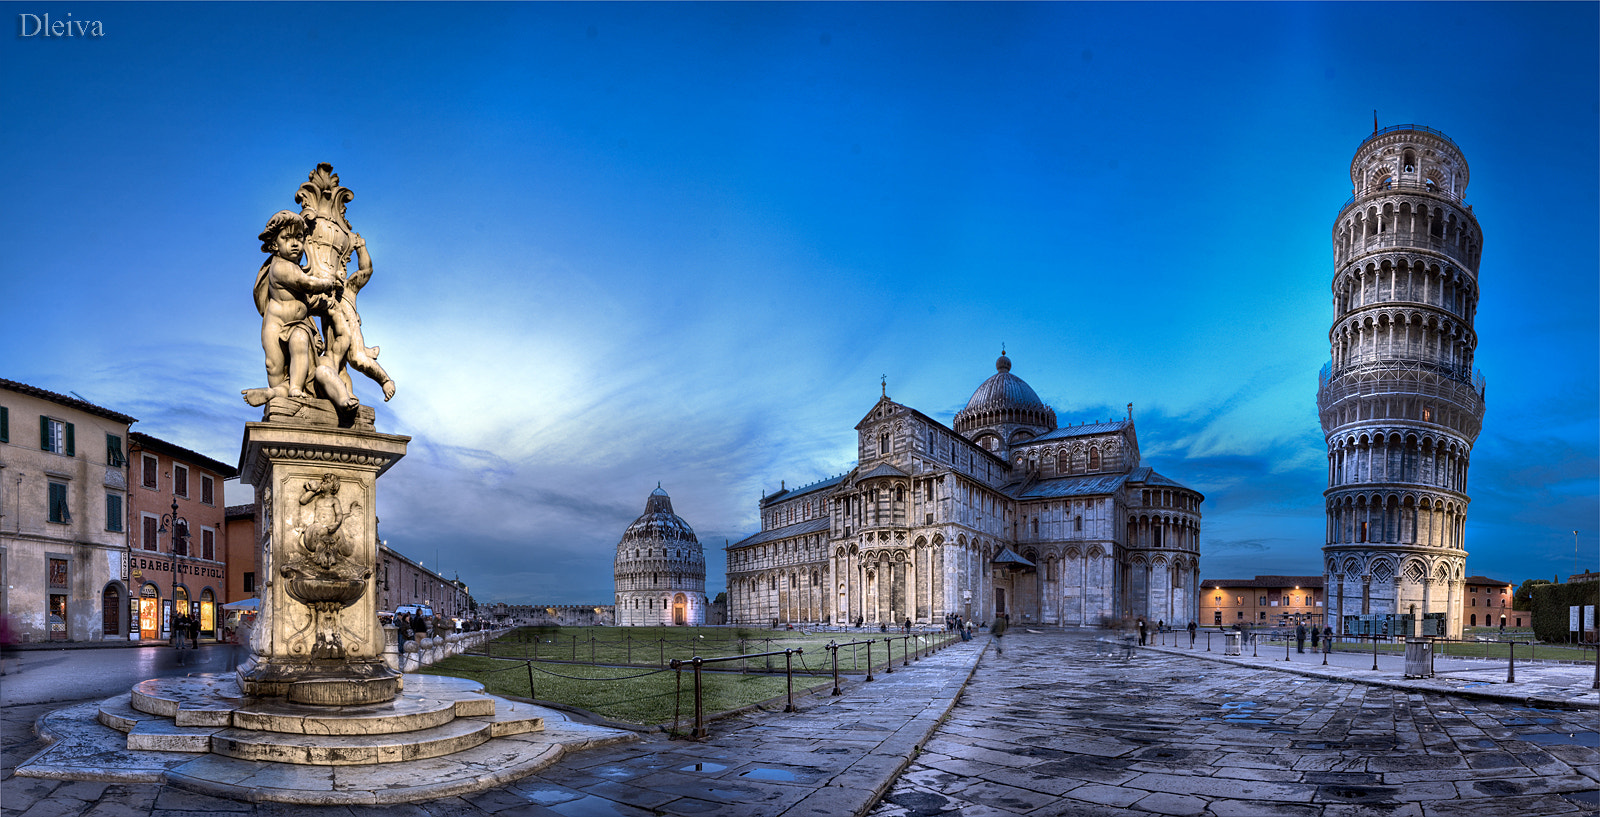 Photograph Piazza dei Miracoli (Pisa) by Domingo Leiva on 500px